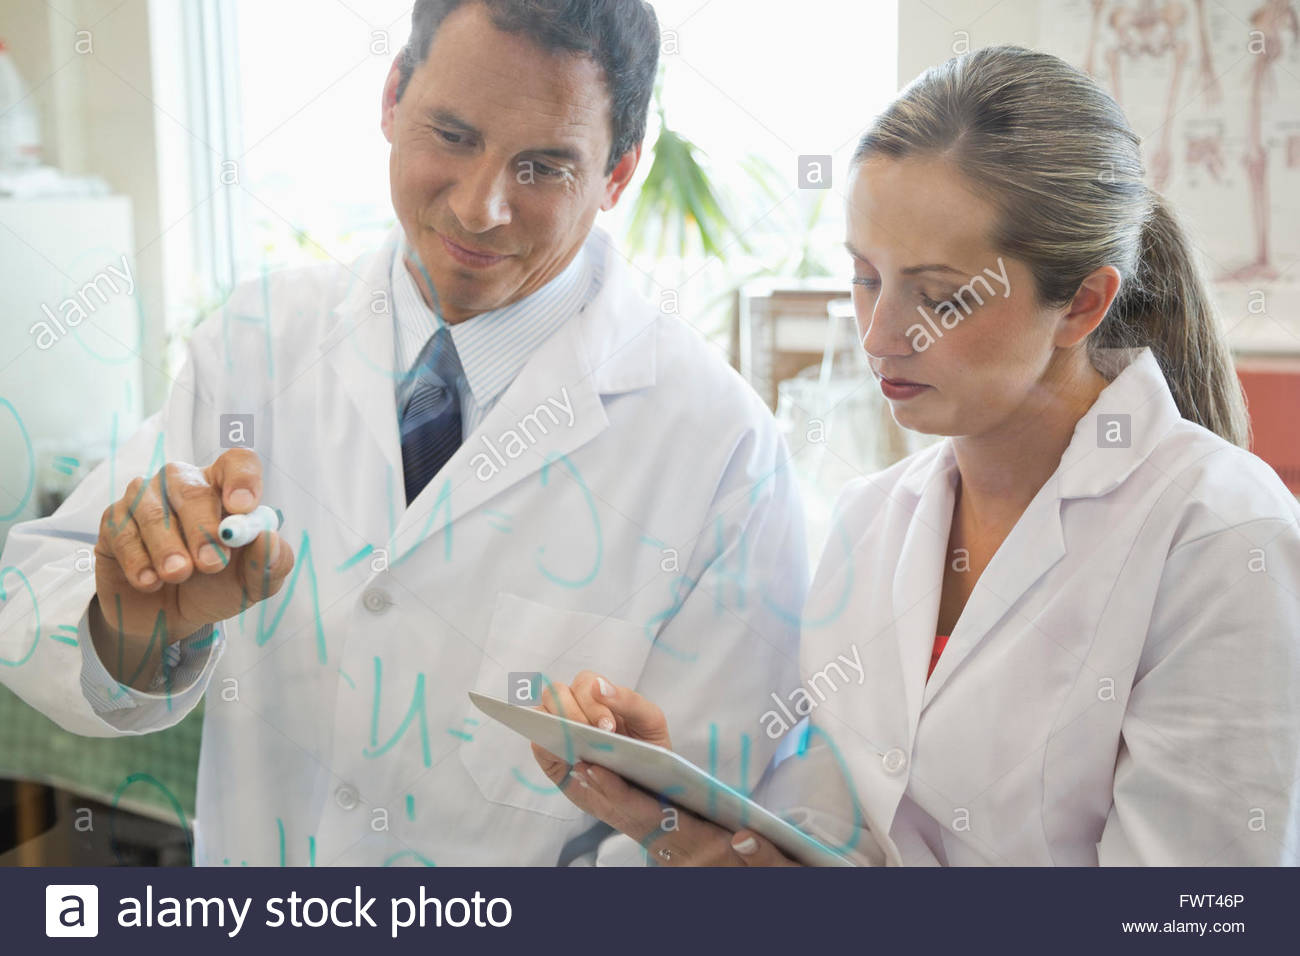 Male and female doctors working in laboratory - Stock Image